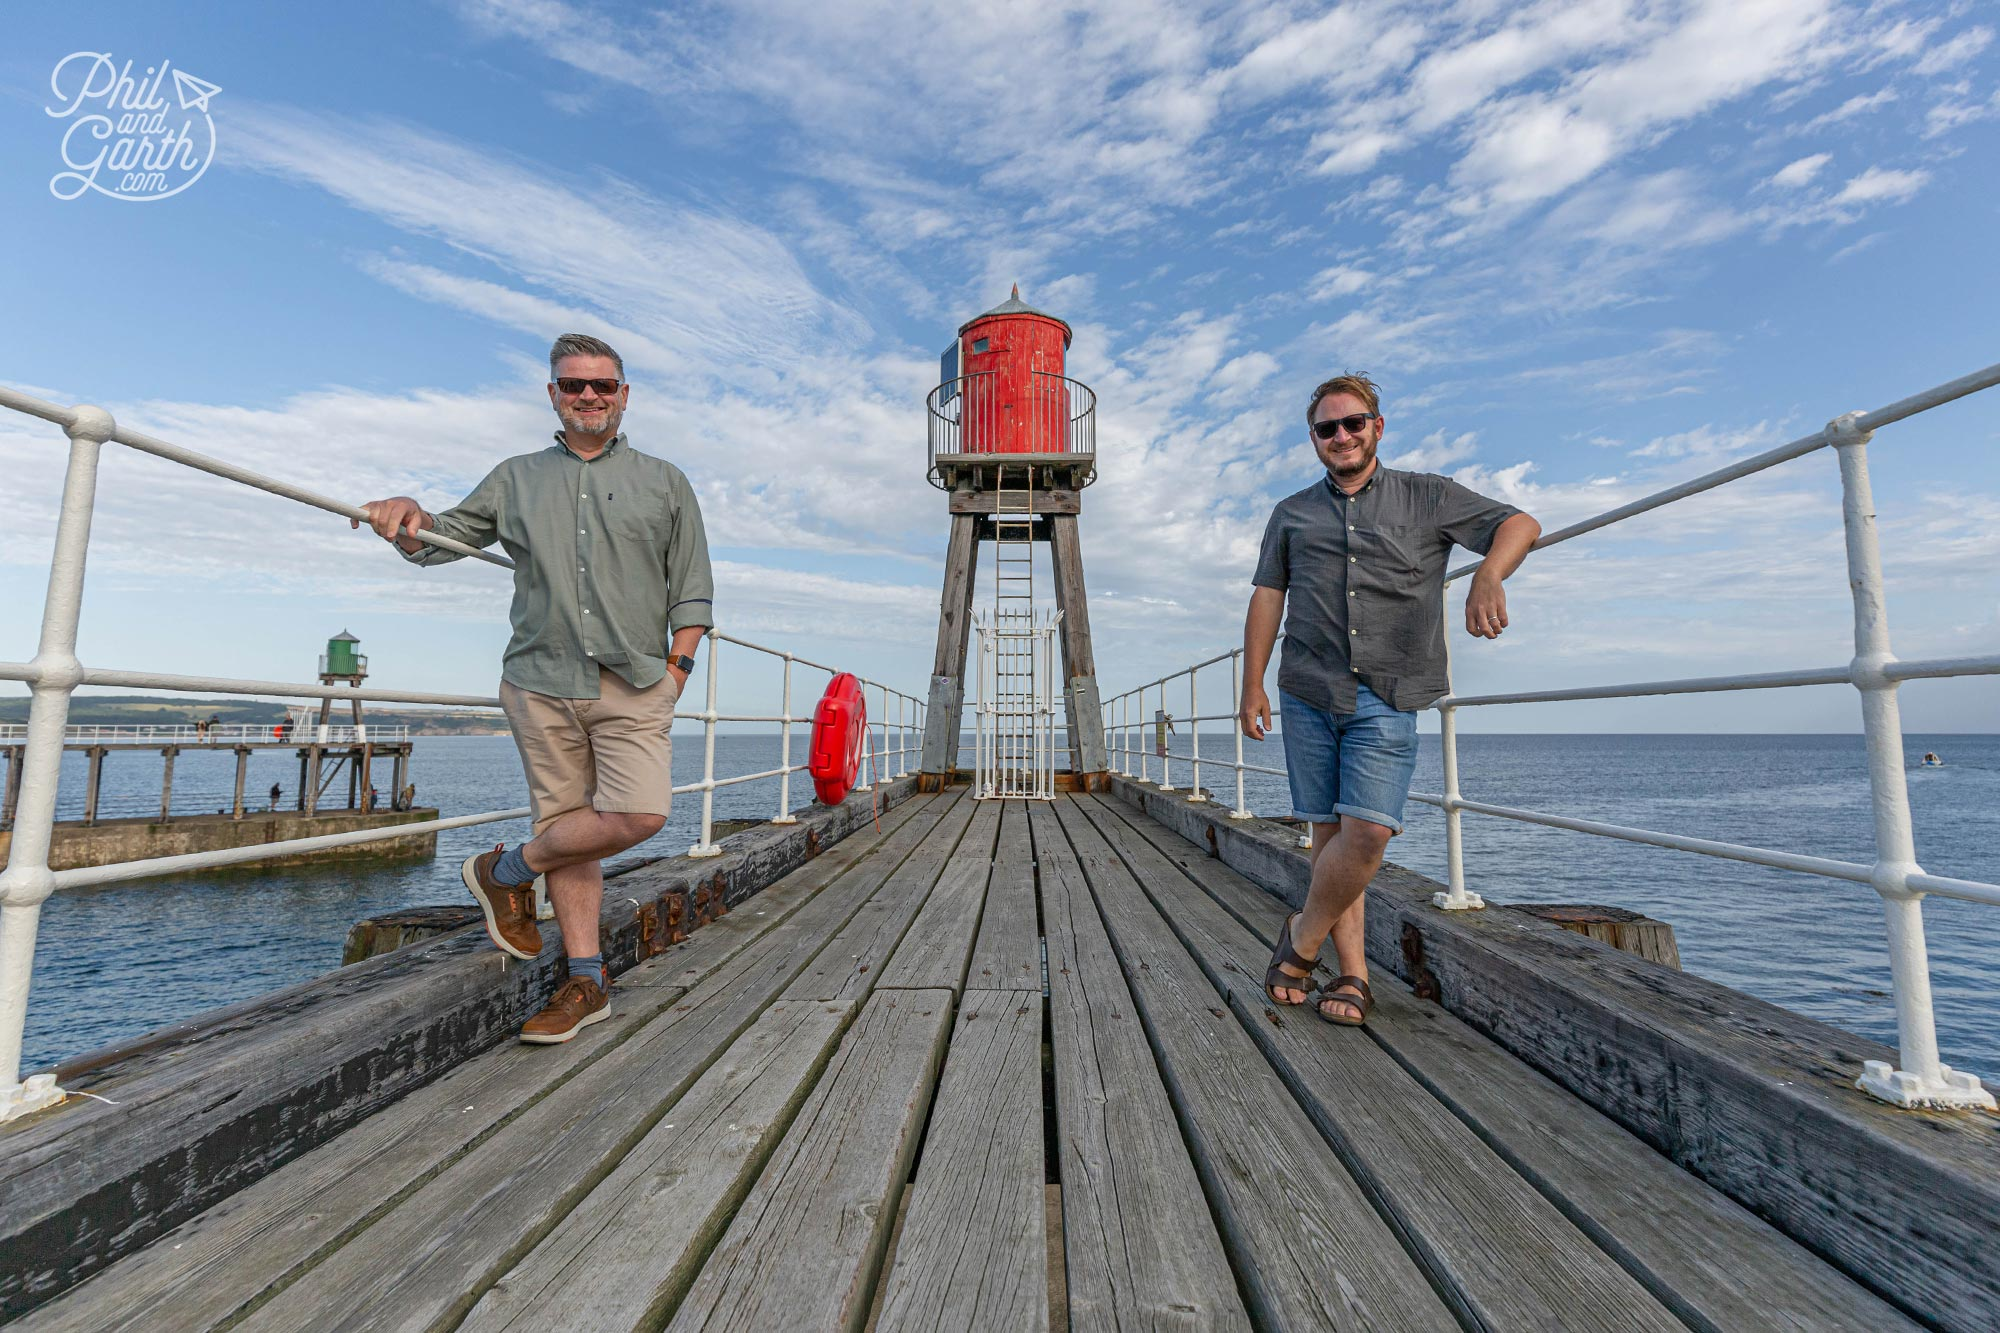 Phil and Garth standing on the wooden planks of the East Pier Whitby England